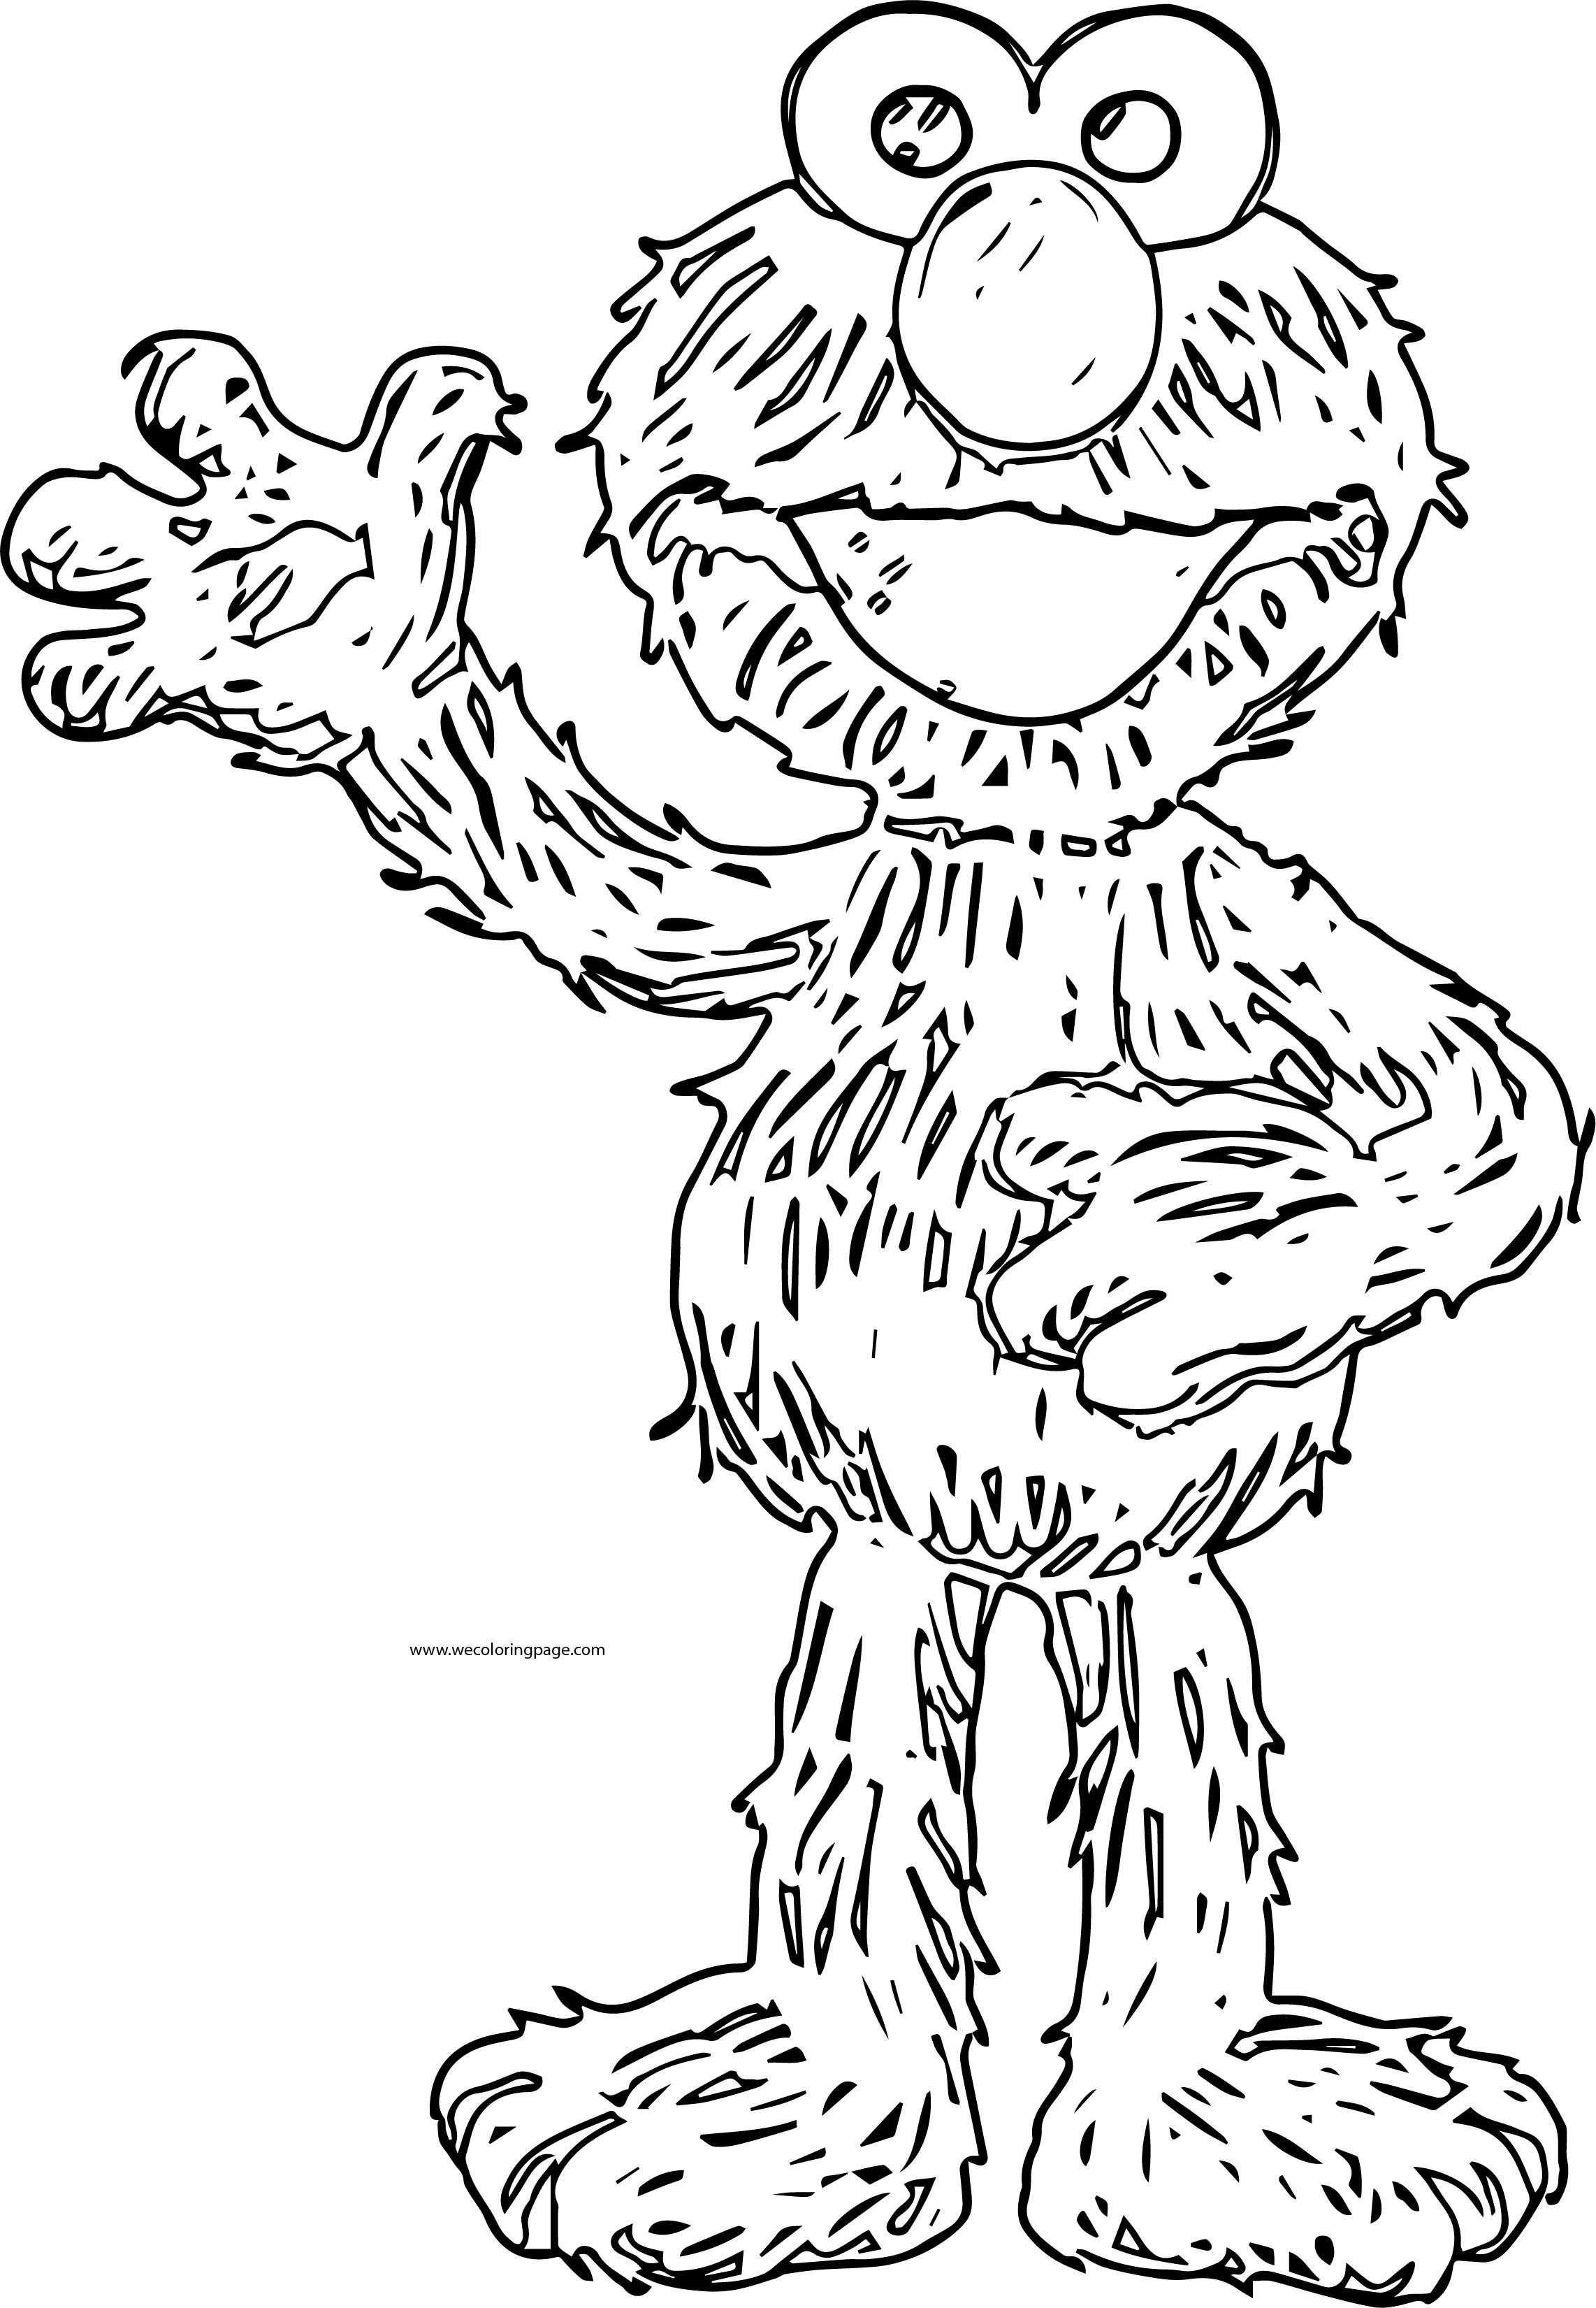 Elmo Loves You Sesame Street Giant Coloring Page